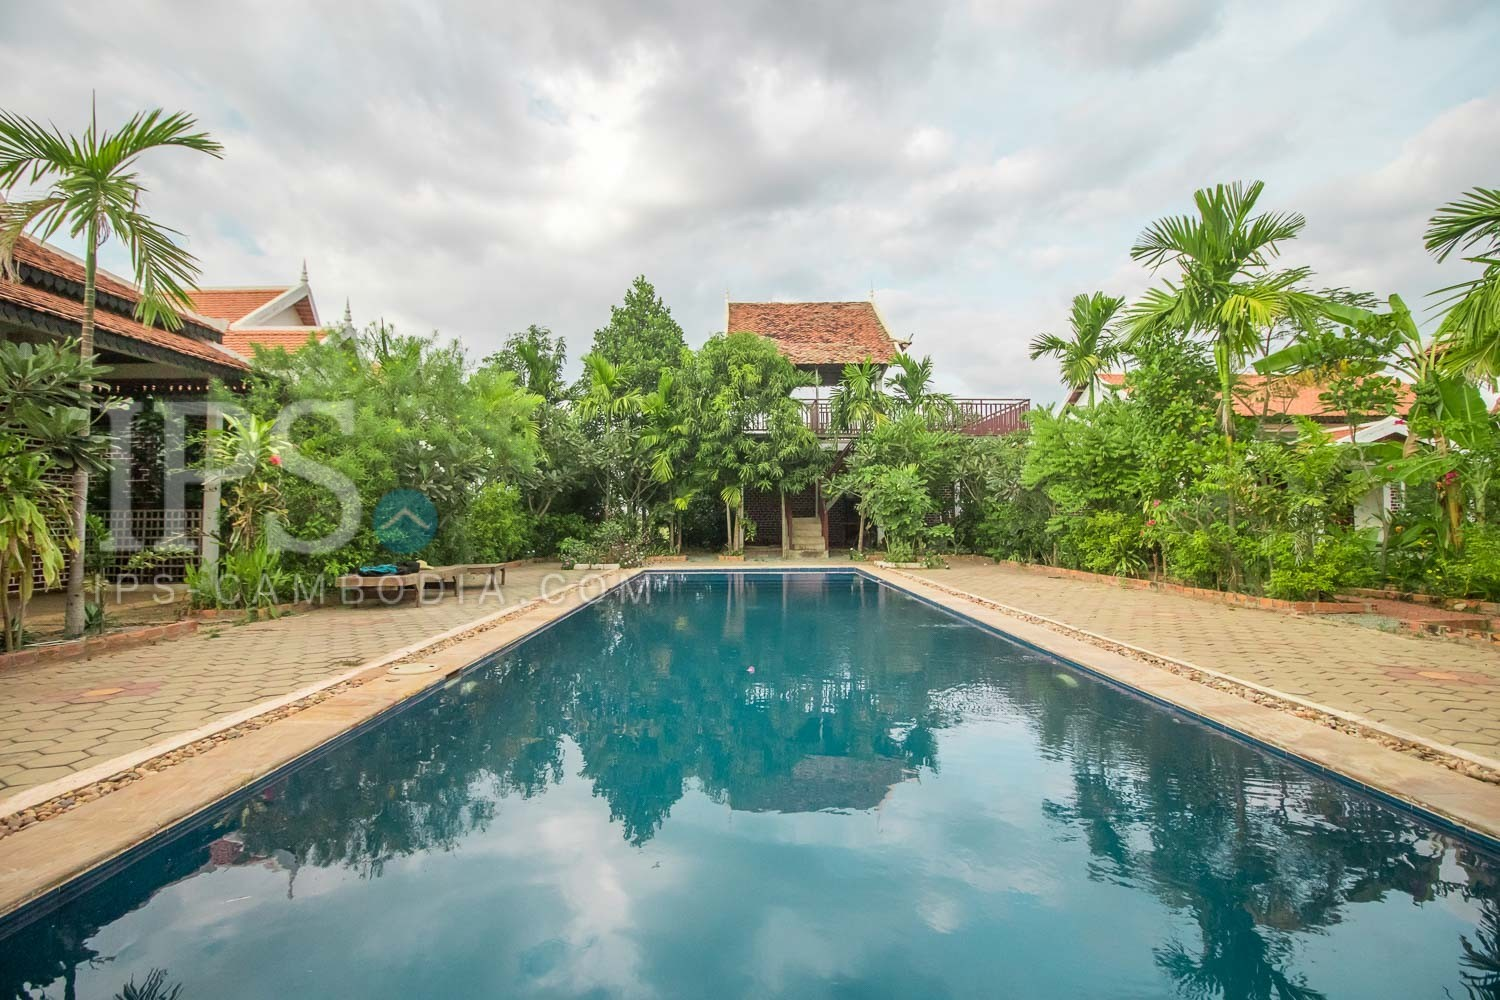 8 Bedroom Countryside Boutique For Rent - Svay Thom, Siem Reap